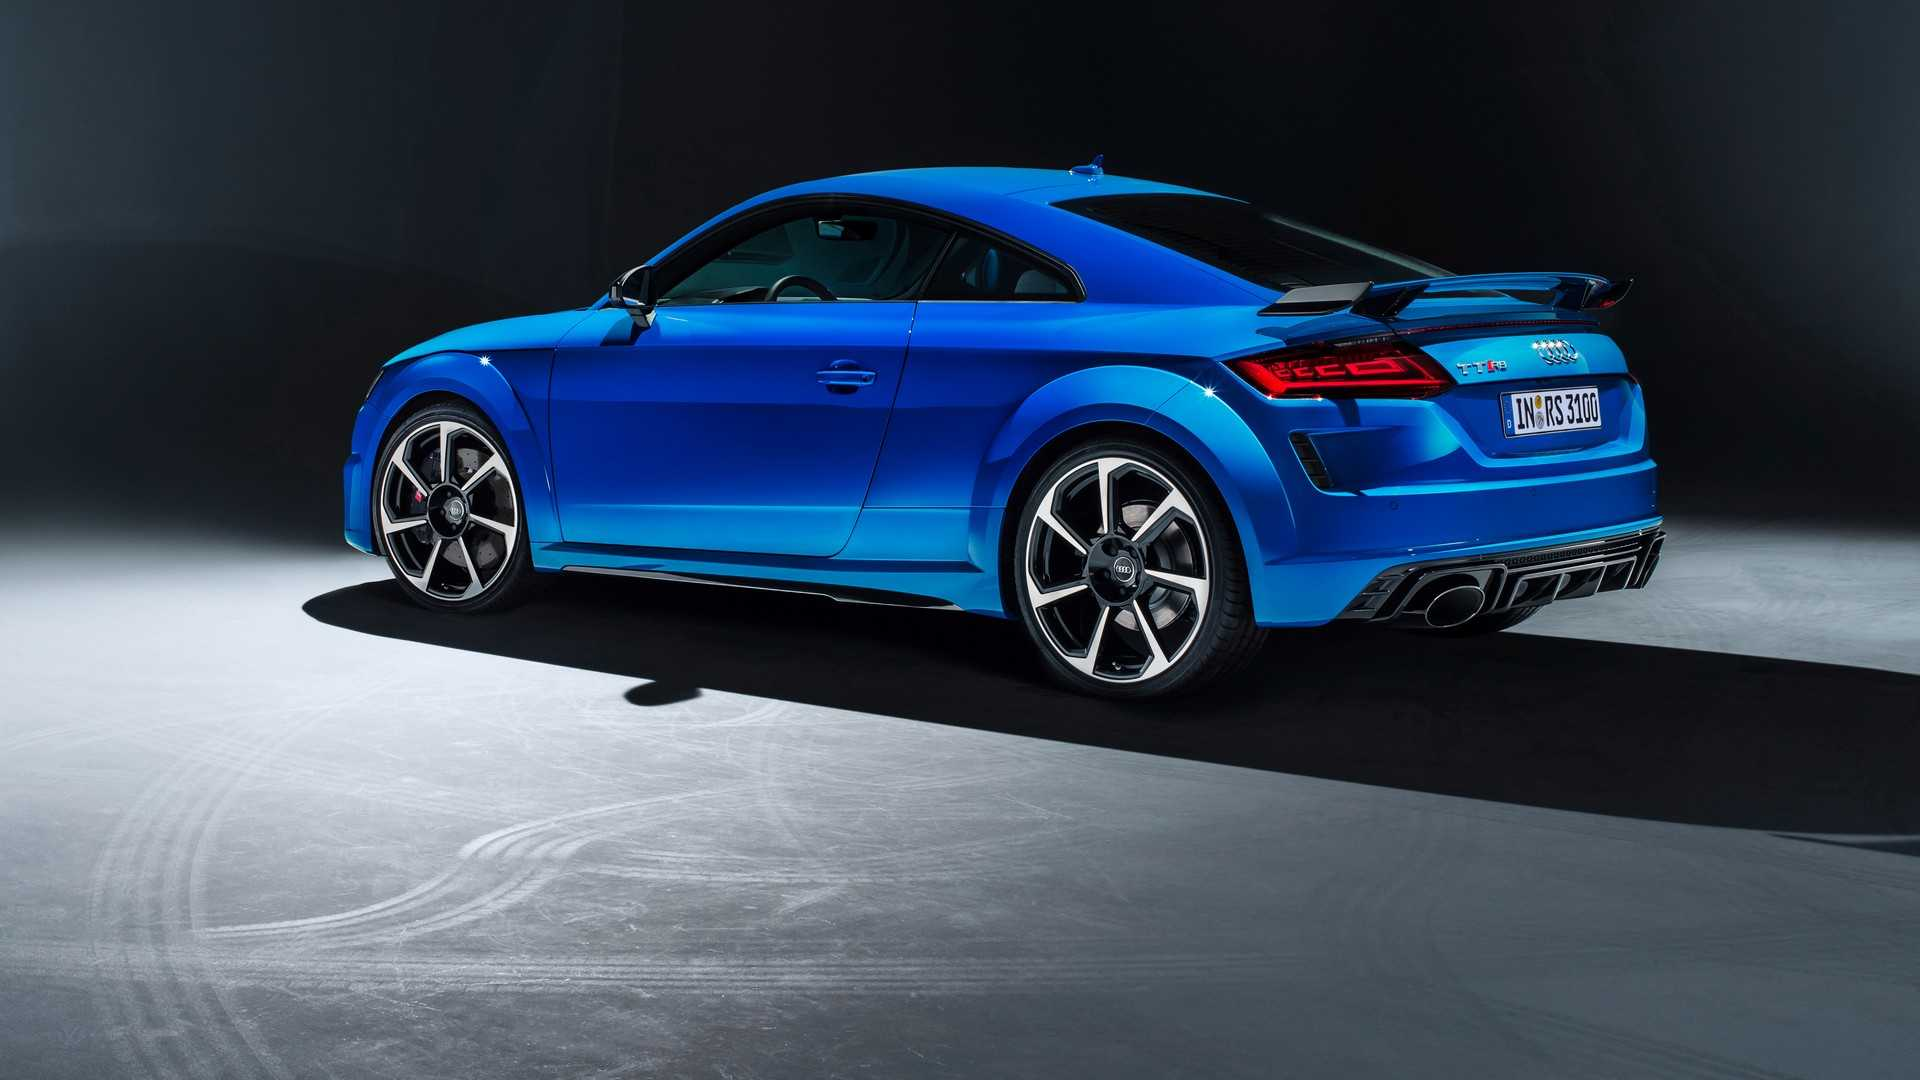 55 The Best 2019 Audi TTS Price And Review